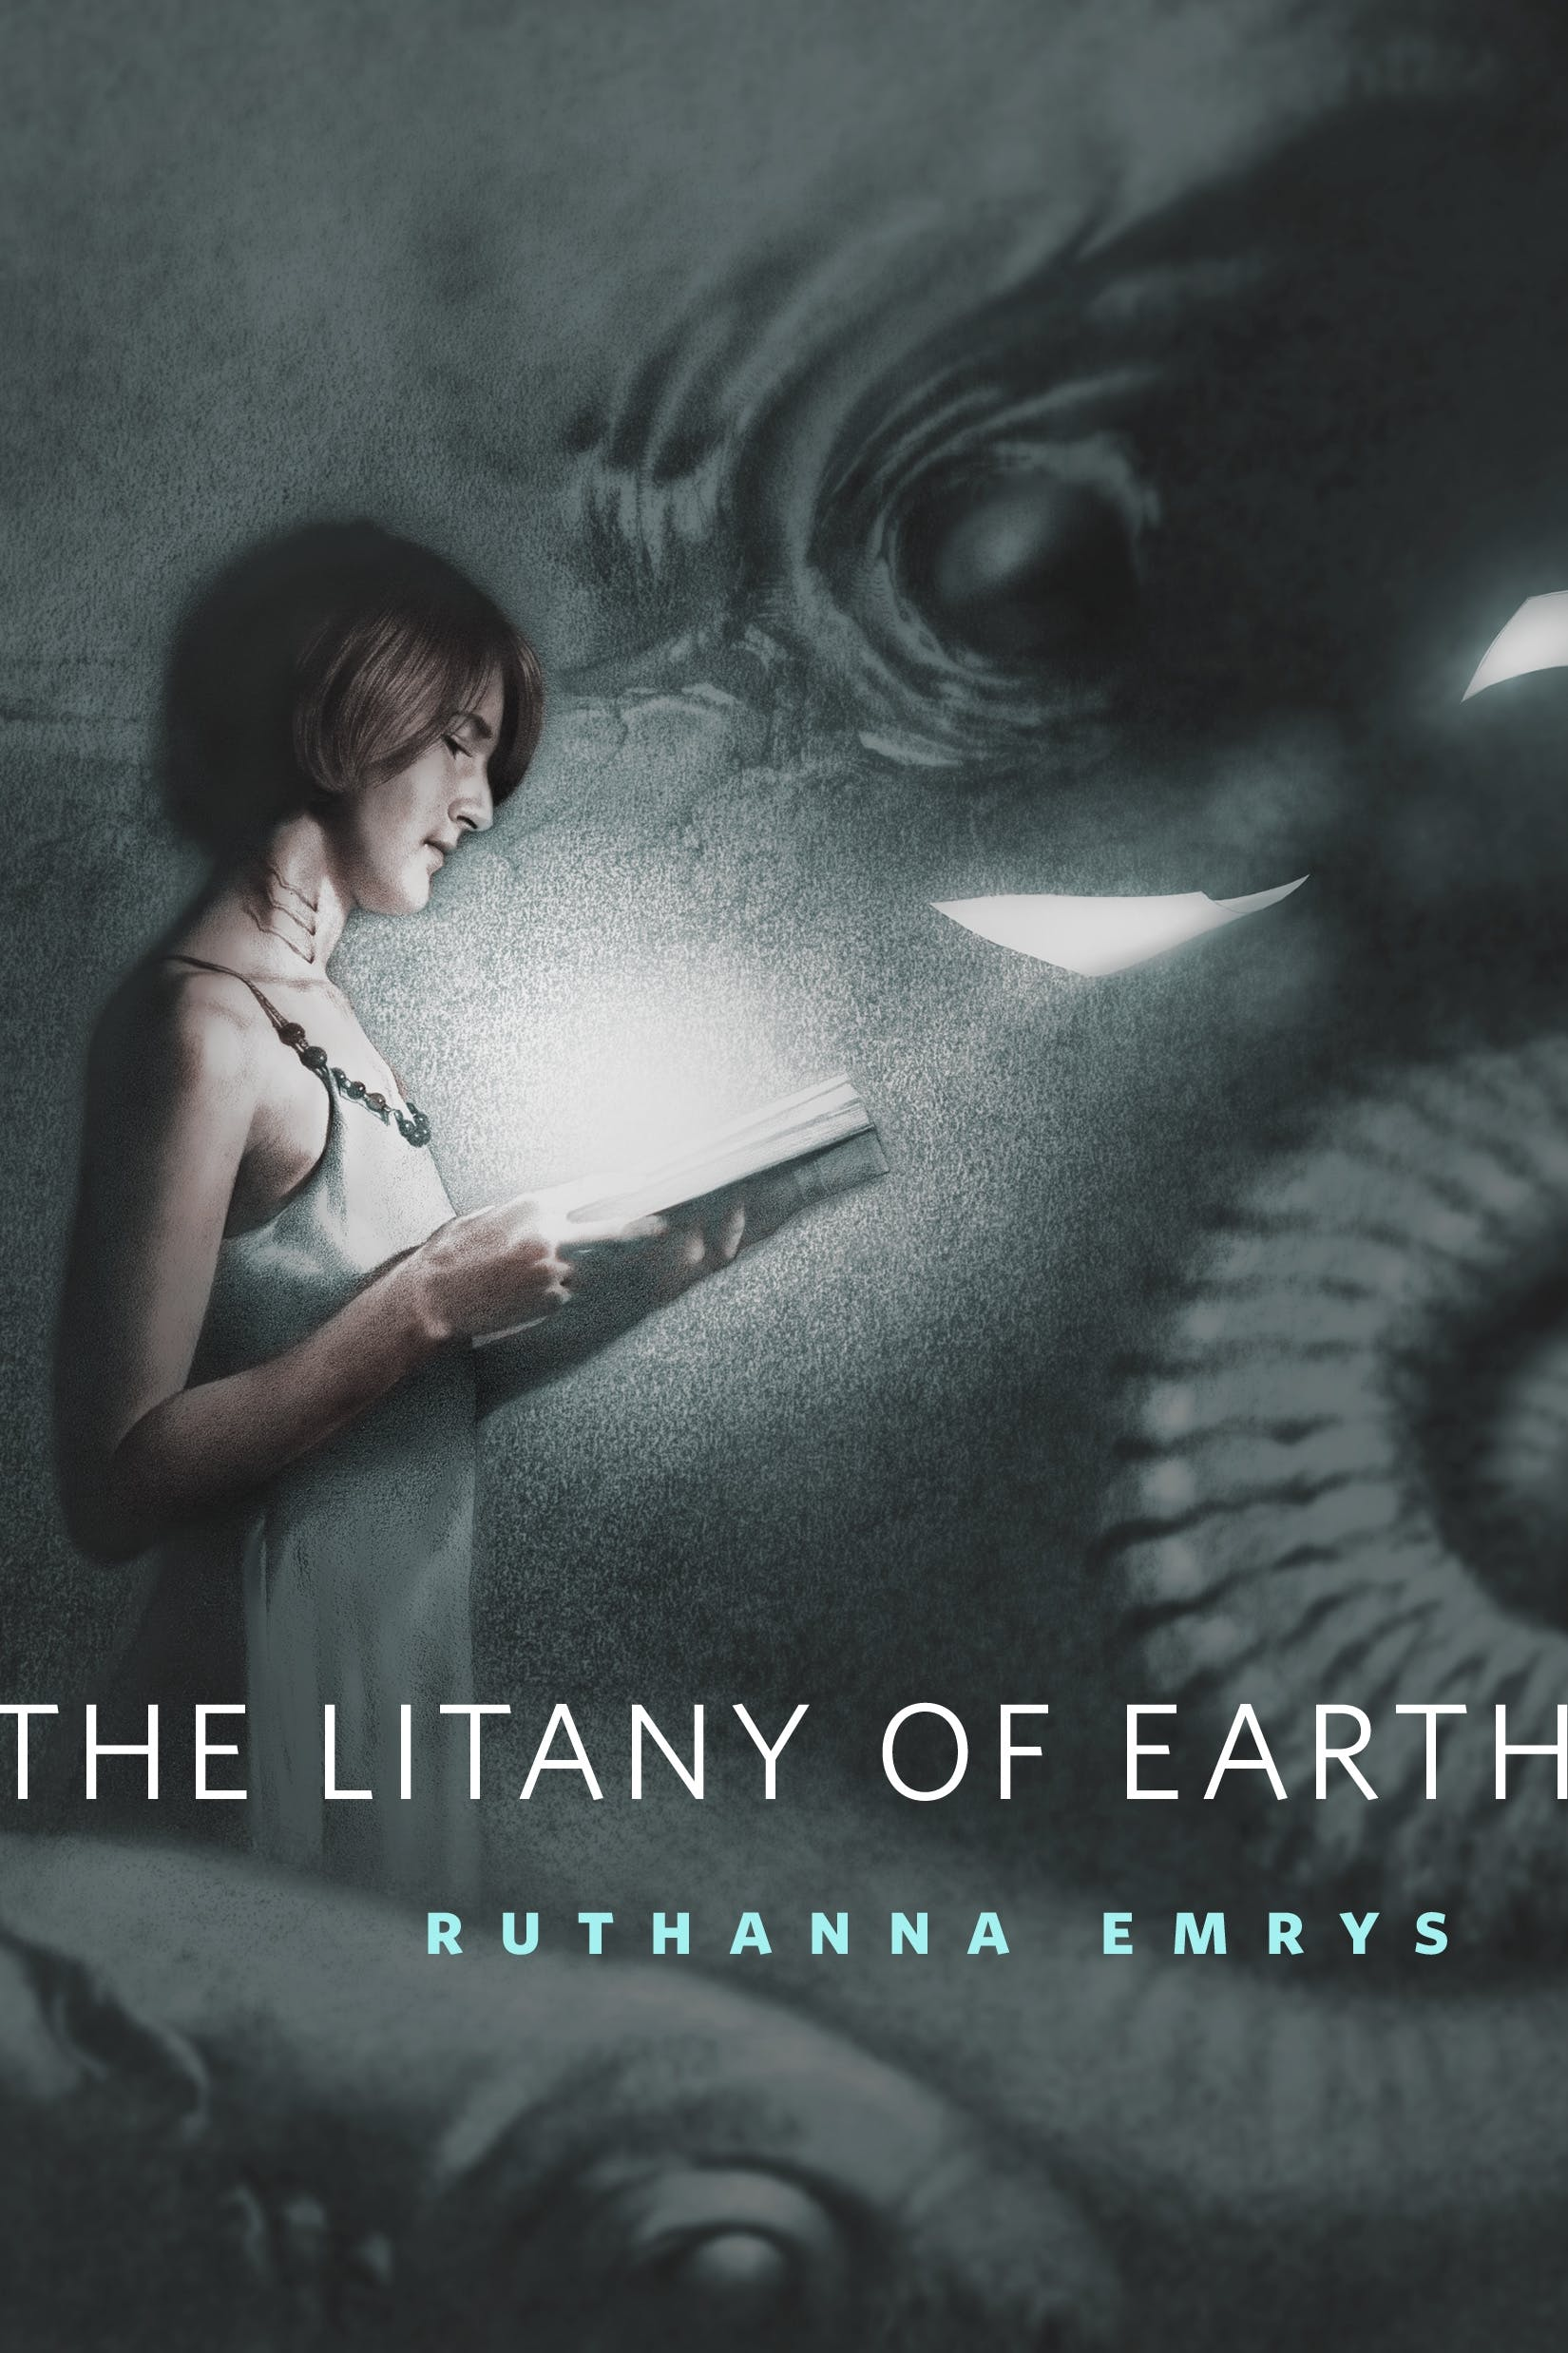 Image of The Litany of Earth